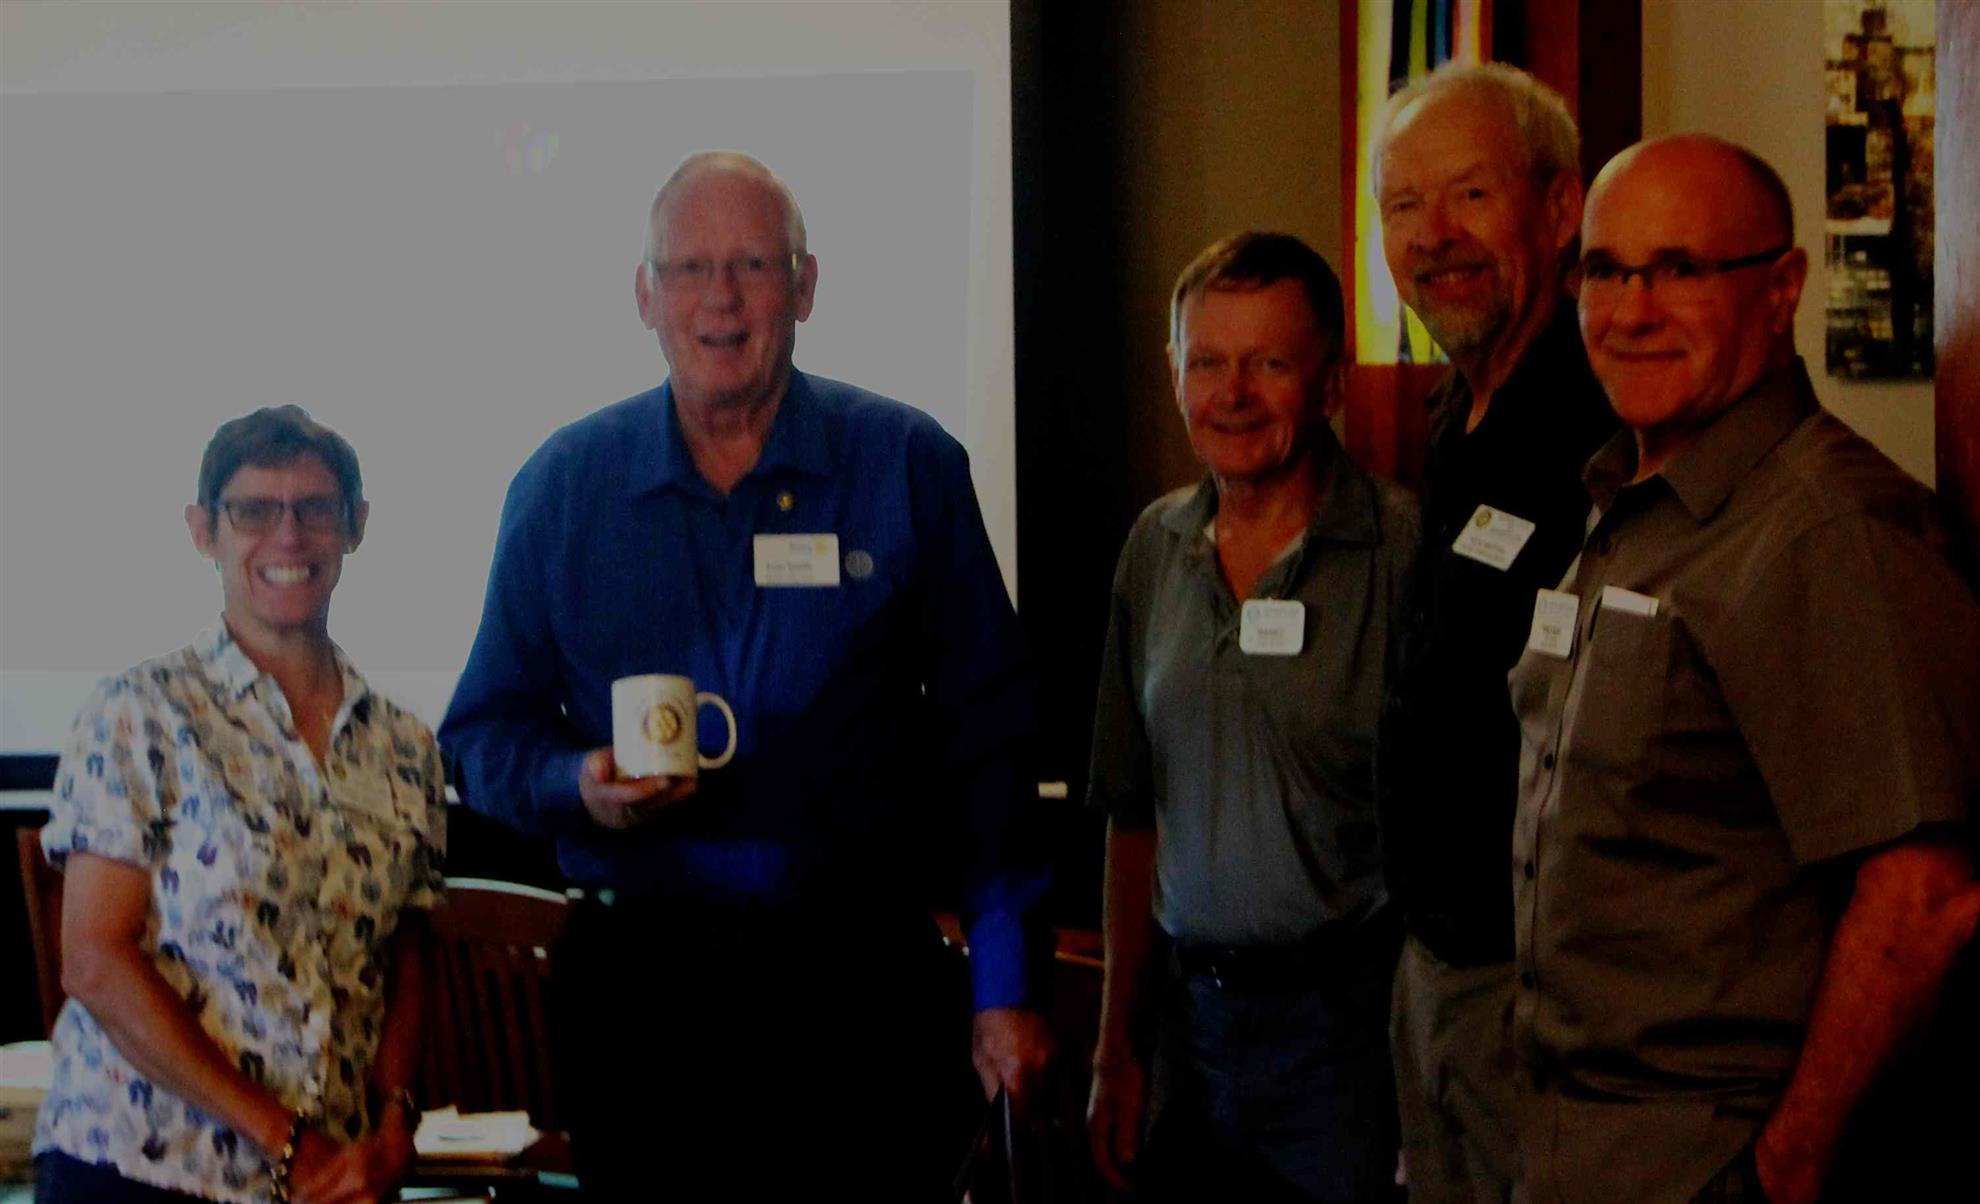 Tom Smith with Membership Committee - August 22, 2017